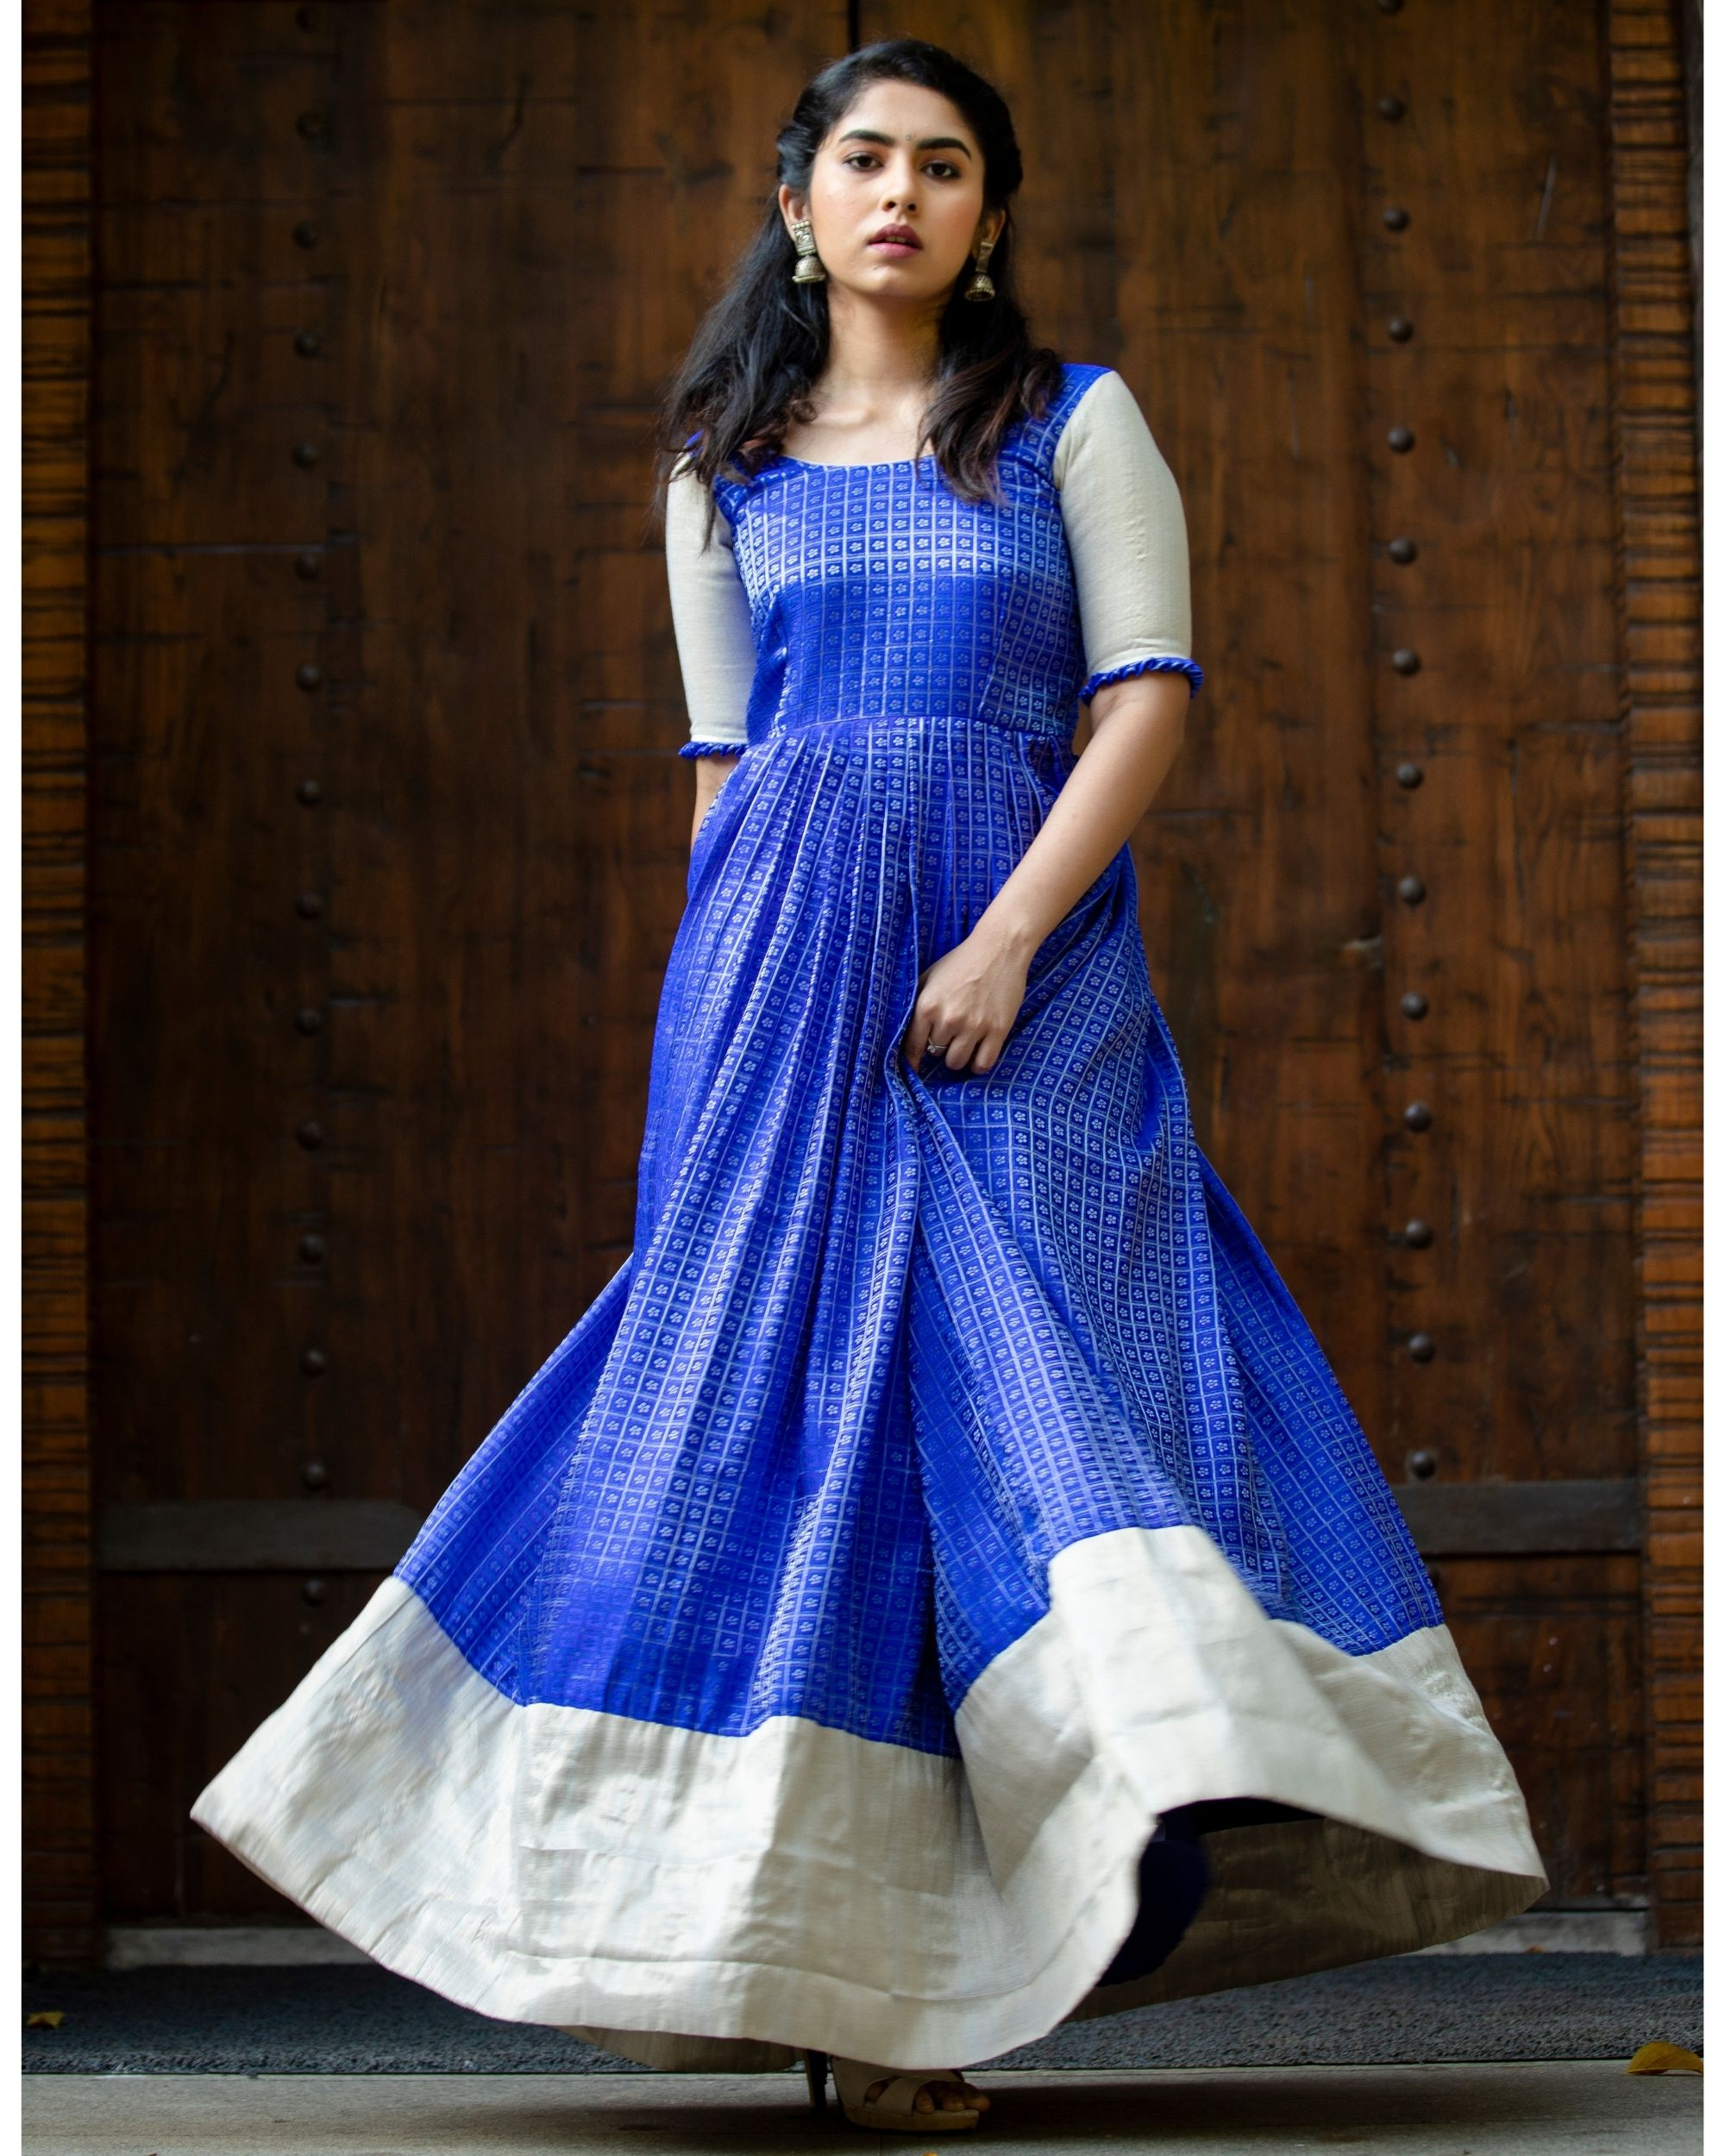 Blue and silver checkered pleated maxi dress